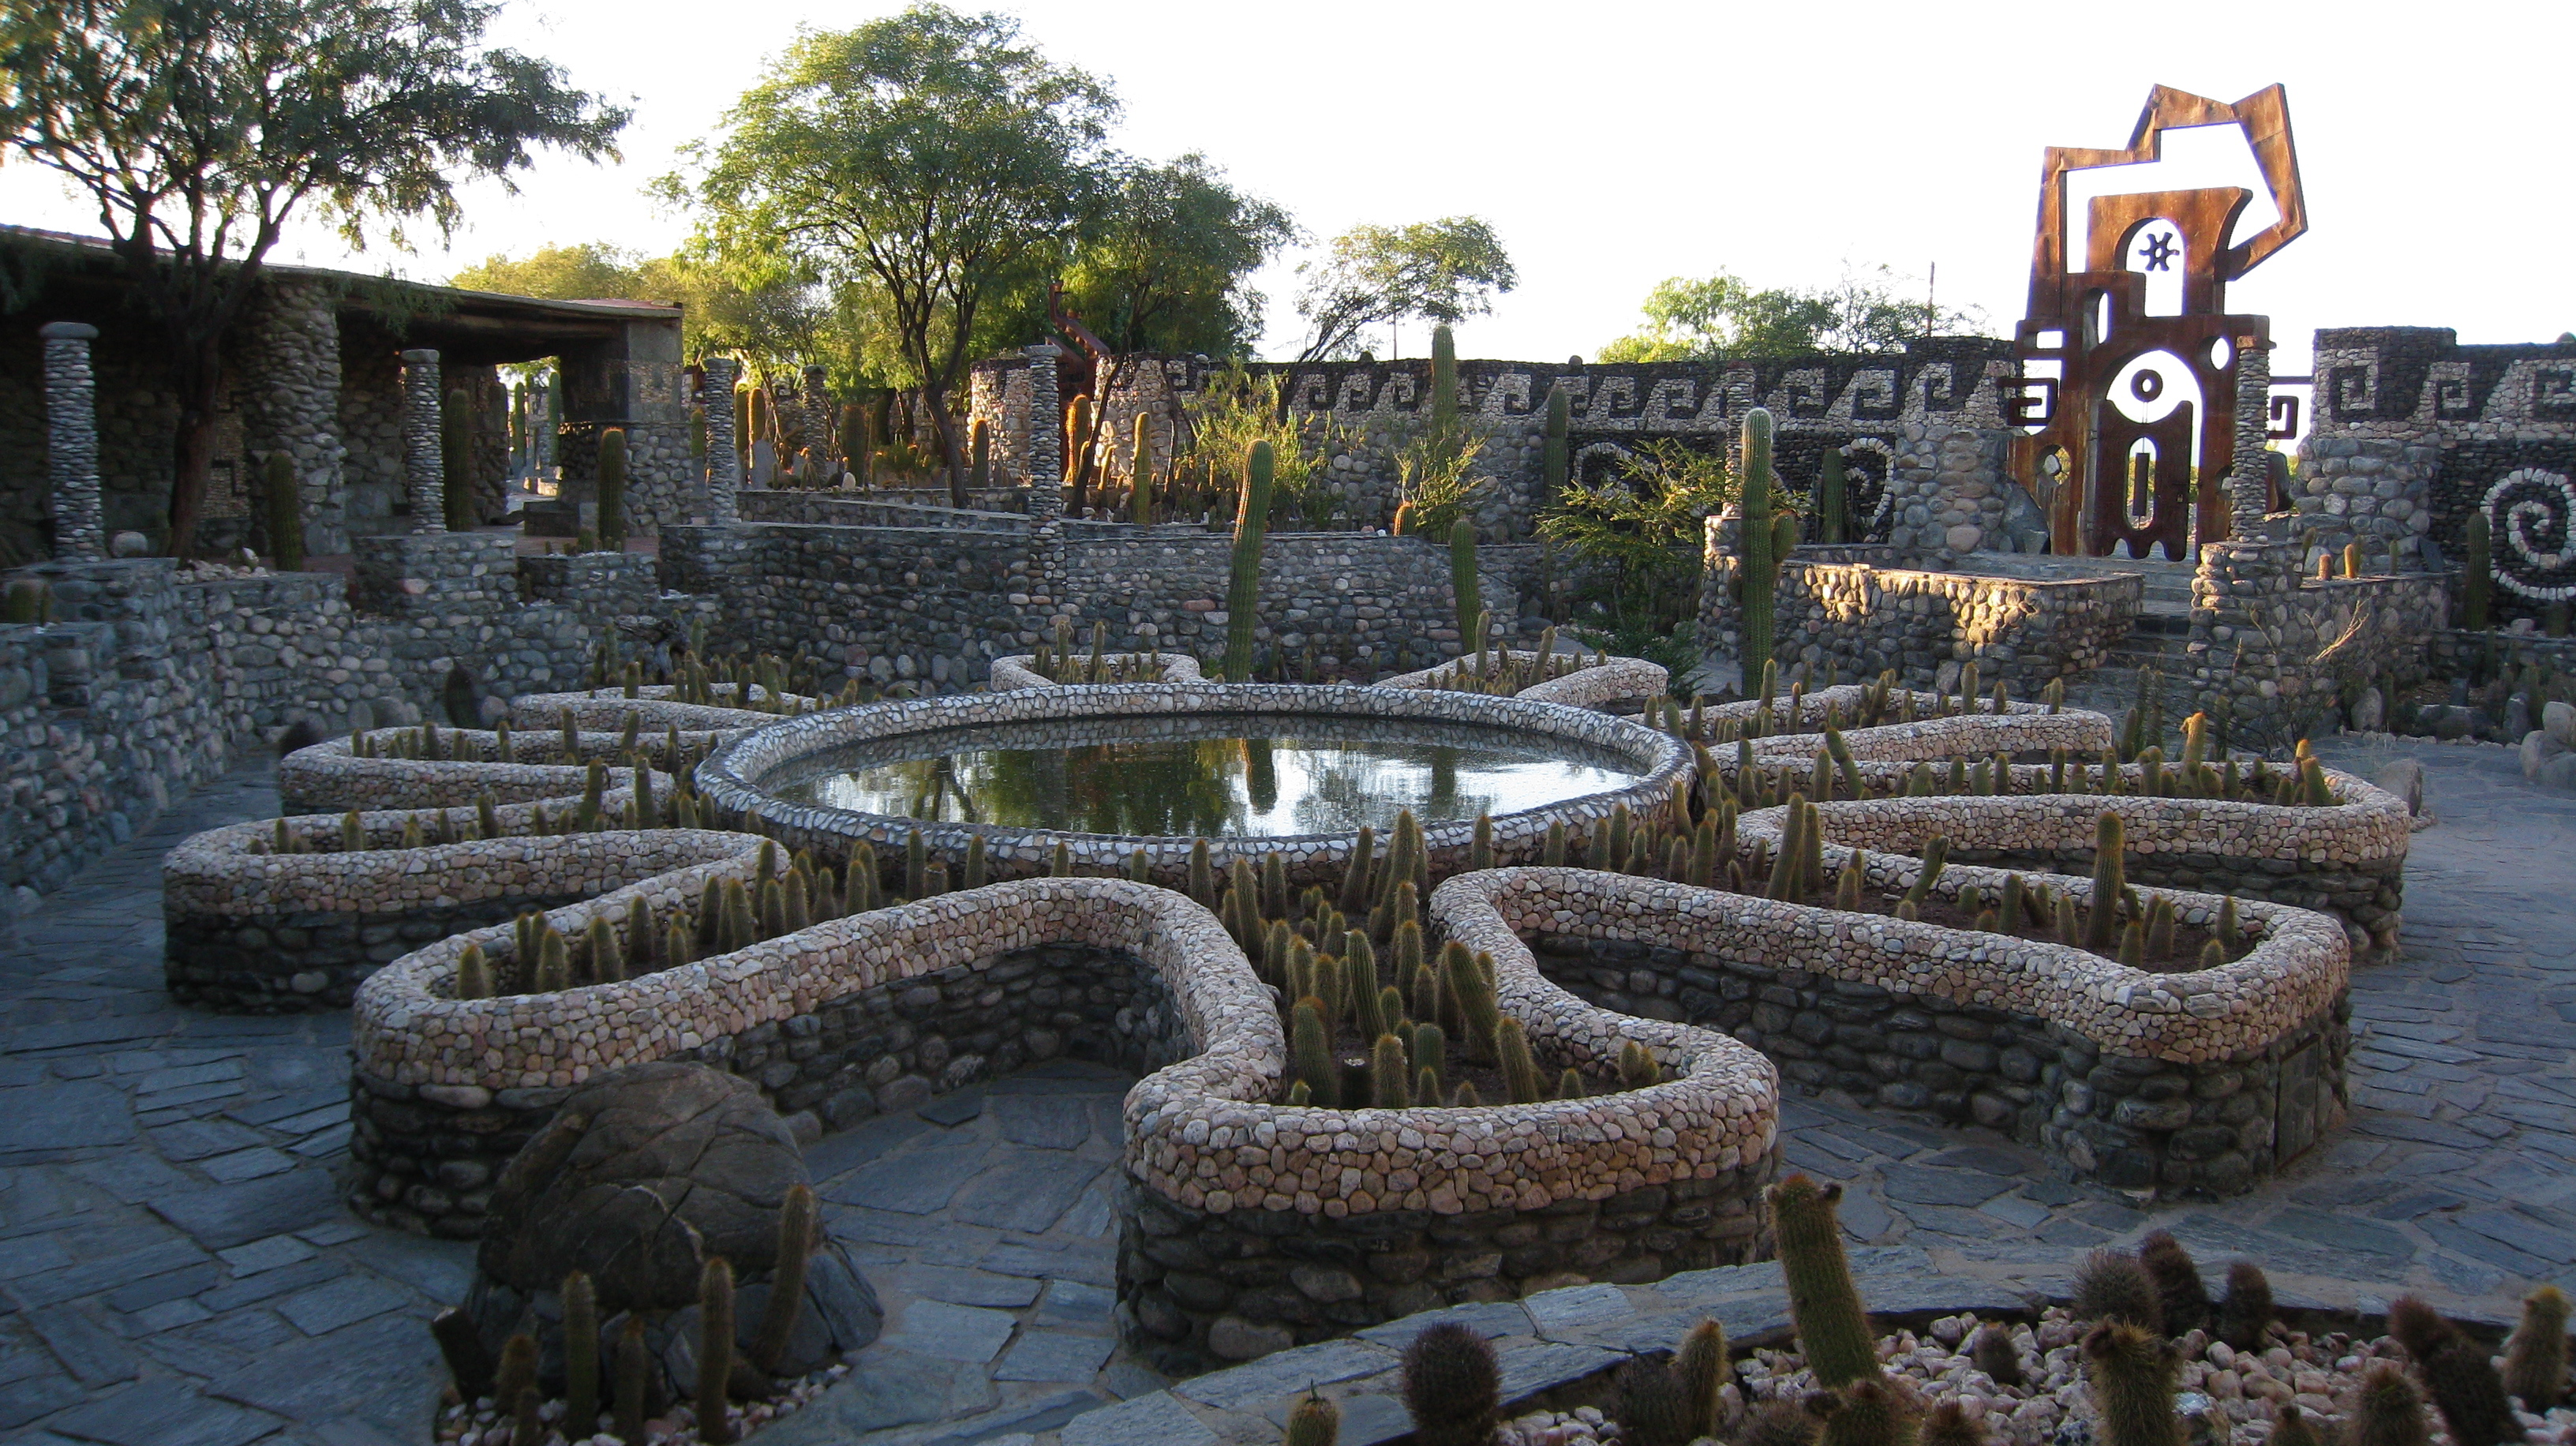 Pachamama Wasi Museum By Alicia Nijdam (Flickr: Museo Pachamama) [CC-BY-2.0 (http://creativecommons.org/licenses/by/2.0)], via Wikimedia Commons